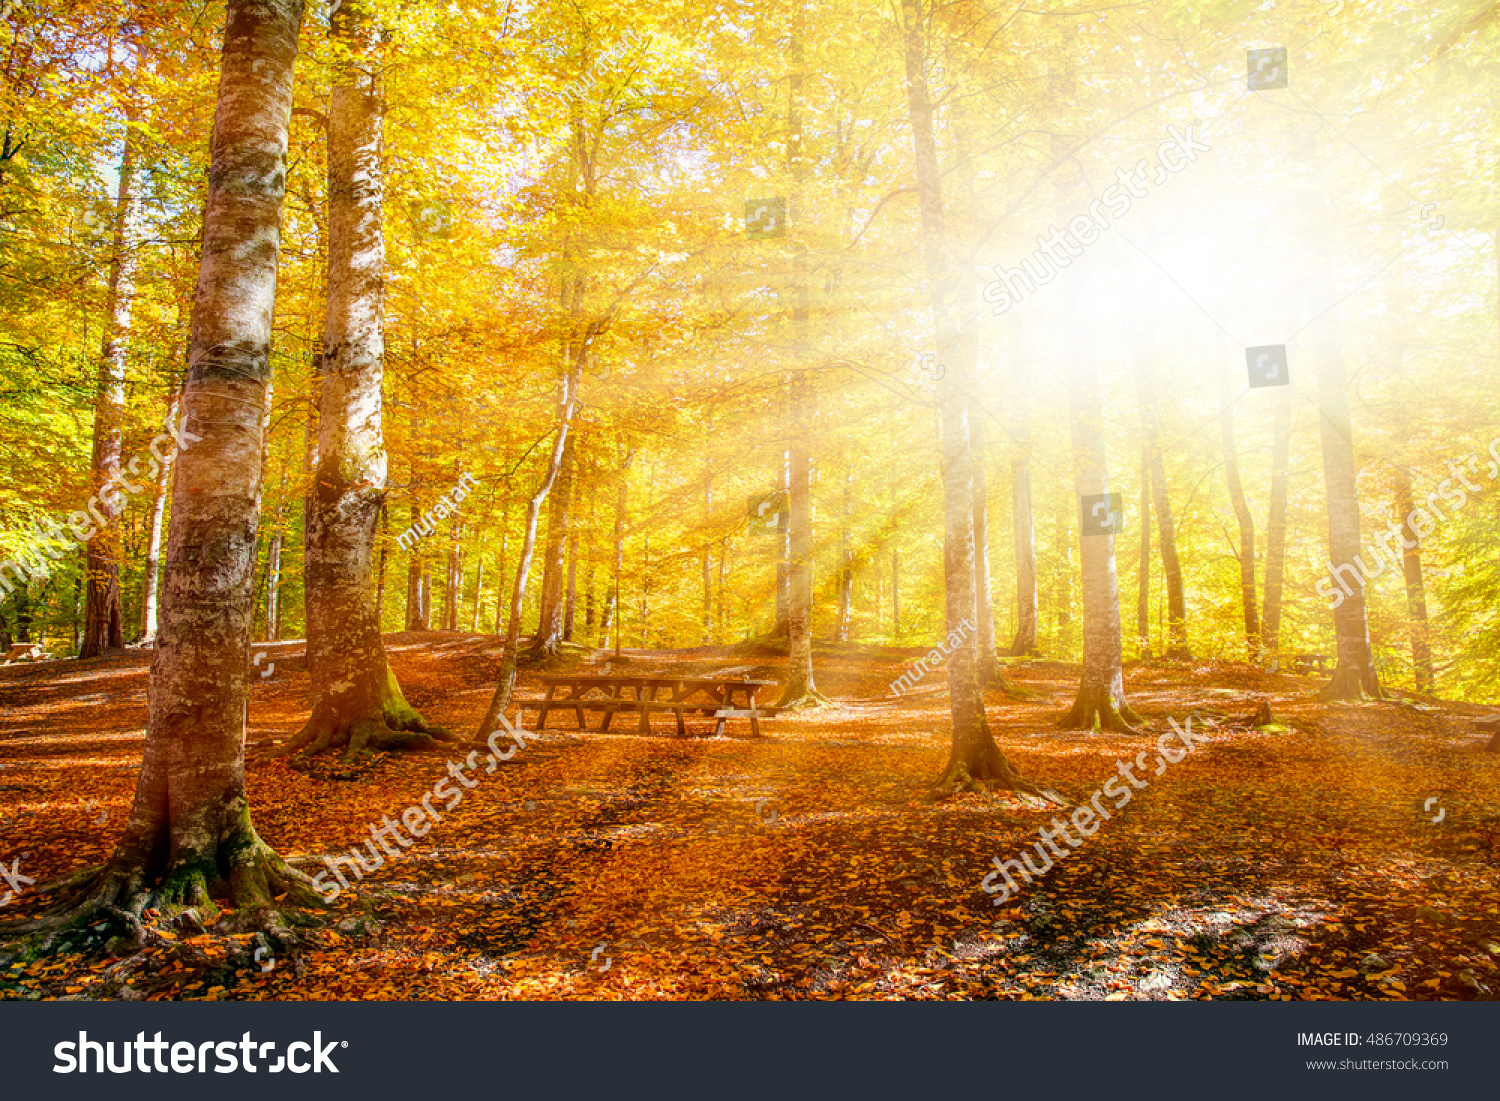 https://image.shutterstock.com/z/stock-photo-autumn-landscape-in-seven-lakes-yedigoller-park-bolu-turkey-486709369.jpg